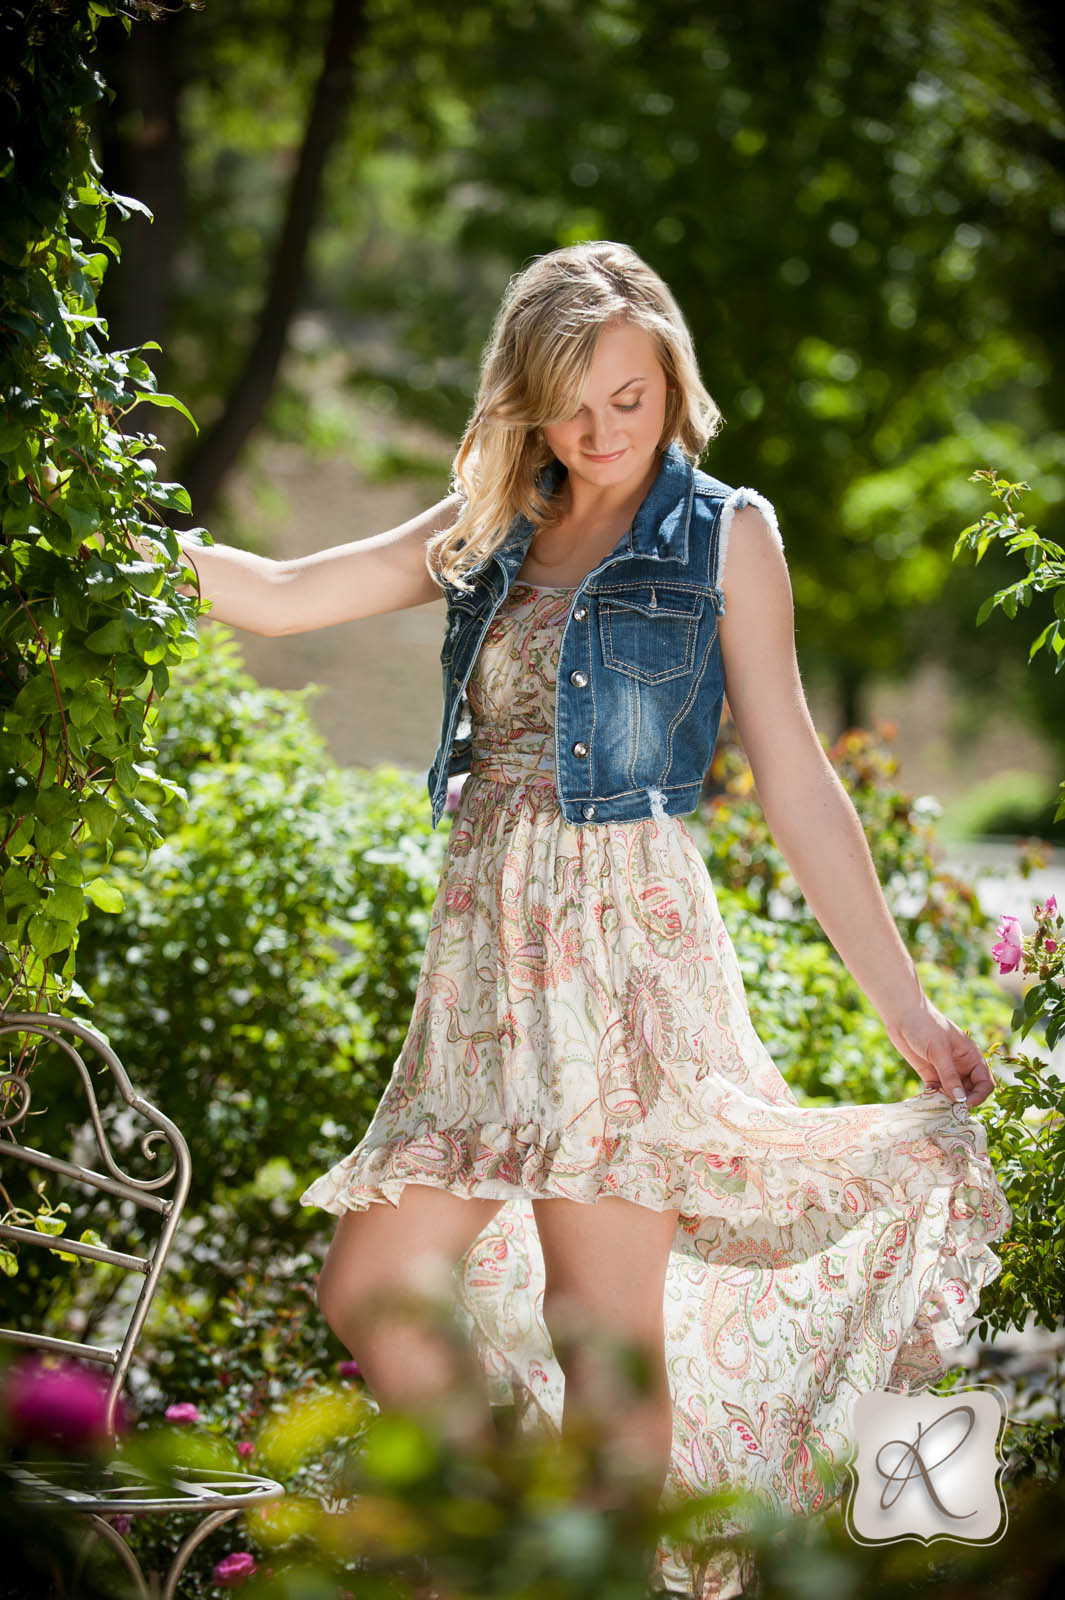 Ideas For Cute Outfits For Women Over 40 Ehow